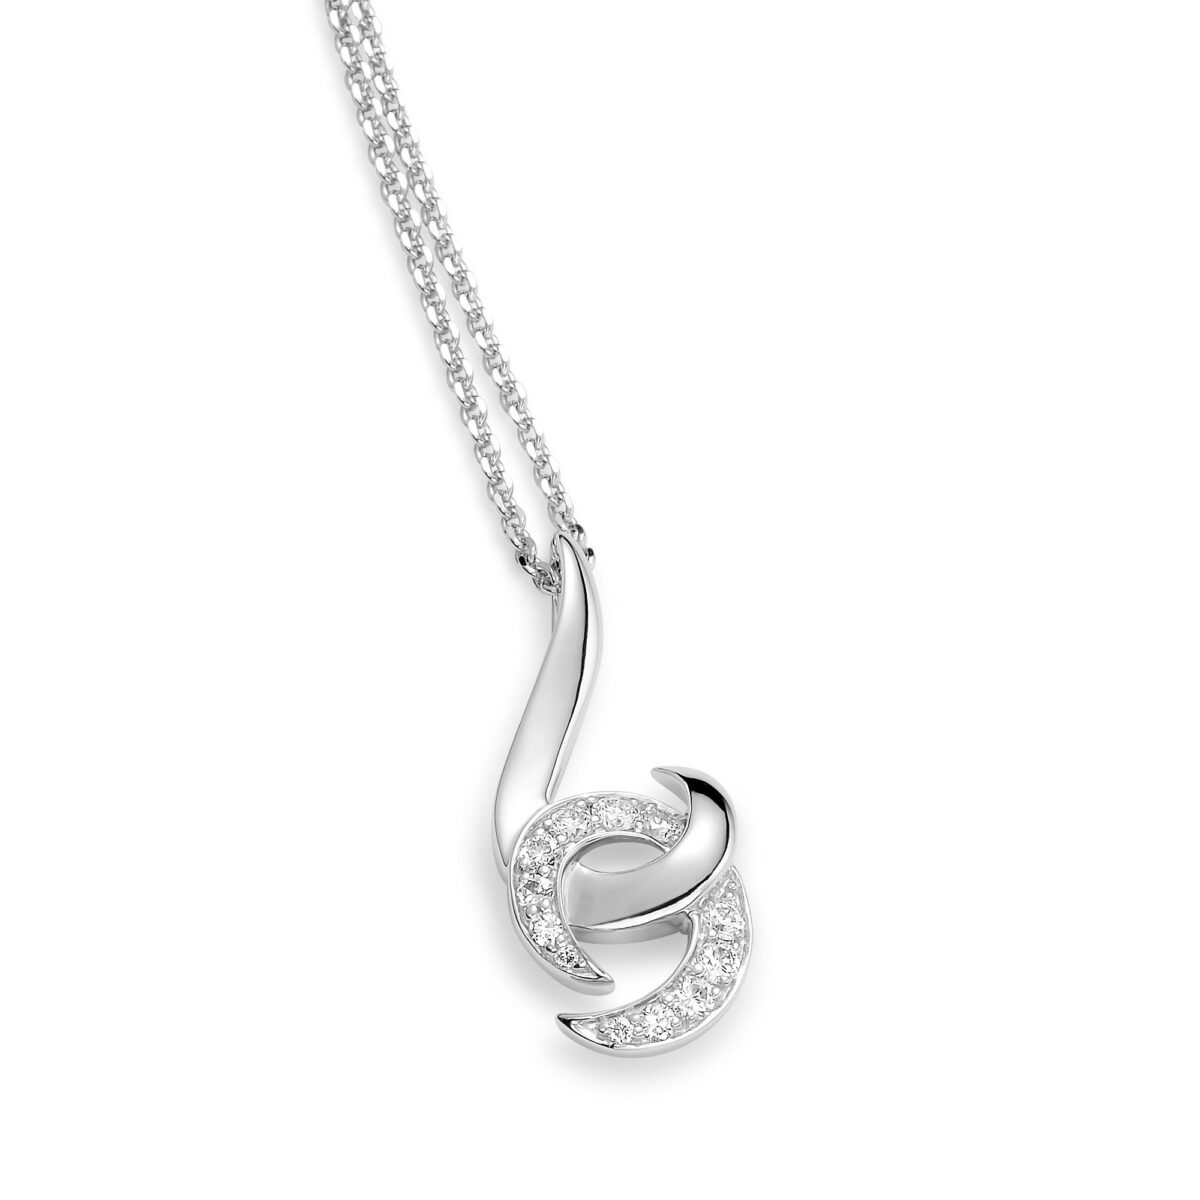 product/h/o/hooked-on-you-necklace-1.jpg;;product/h/o/hooked-on-you-necklace-2.jpg;;product/d/m/dmr-packaging_63.jpg